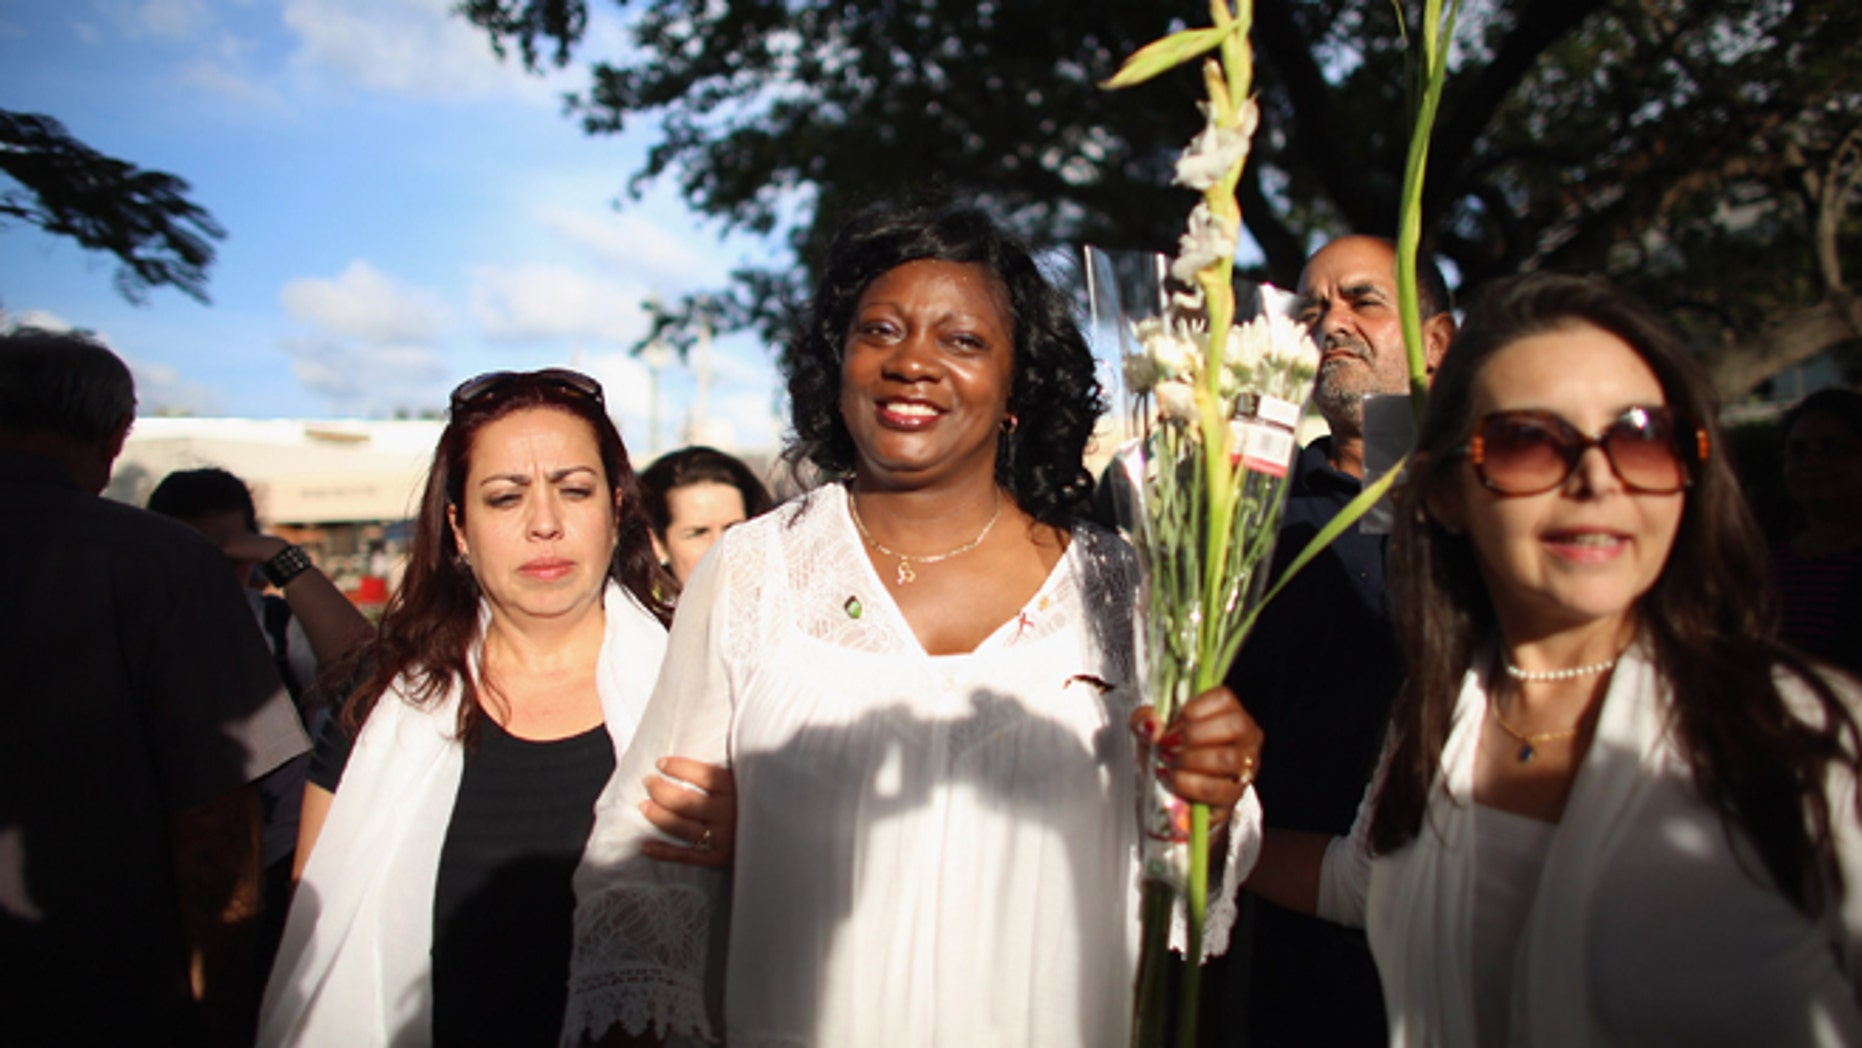 CORAL GABLES, FL - APRIL 27:  Berta Soler, co-founder of the Ladies in White, (C)  and current leader of the Cuban opposition group walks with Janisset Rivero  (L) and others as she visits with Cuban exiles during an event at Merrick Park on April 27, 2013 in Coral Gables, Florida. In Cuba Solerâs group is made up of wives and mothers and was formed in 2003 after the arrests of 75 government opponents.  (Photo by Joe Raedle/Getty Images)